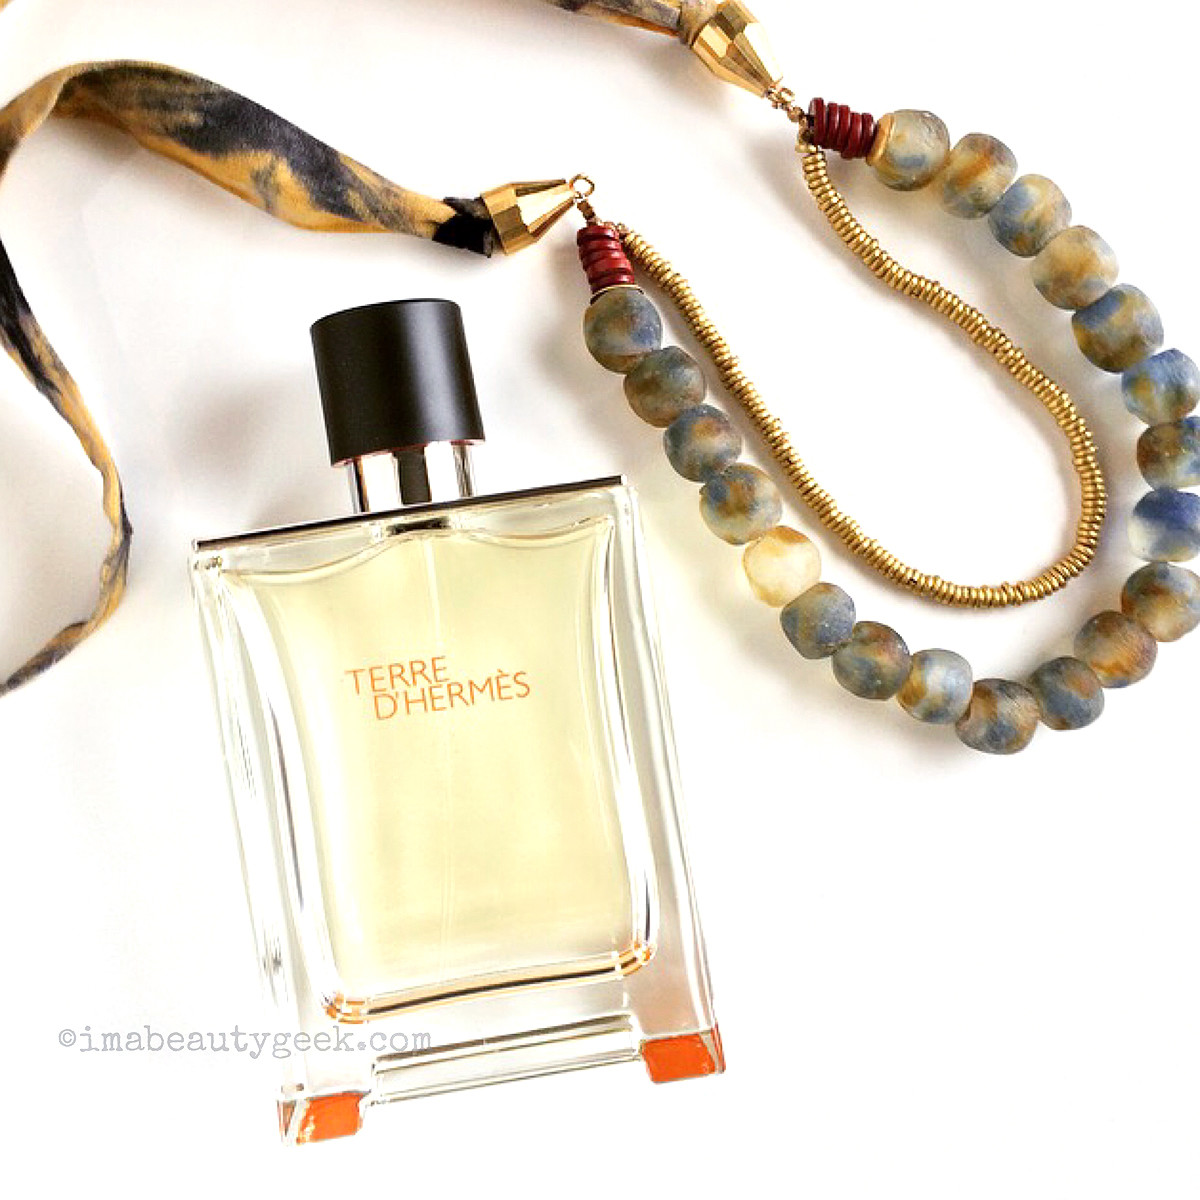 Terre d'Hermes fragrance for men and for me